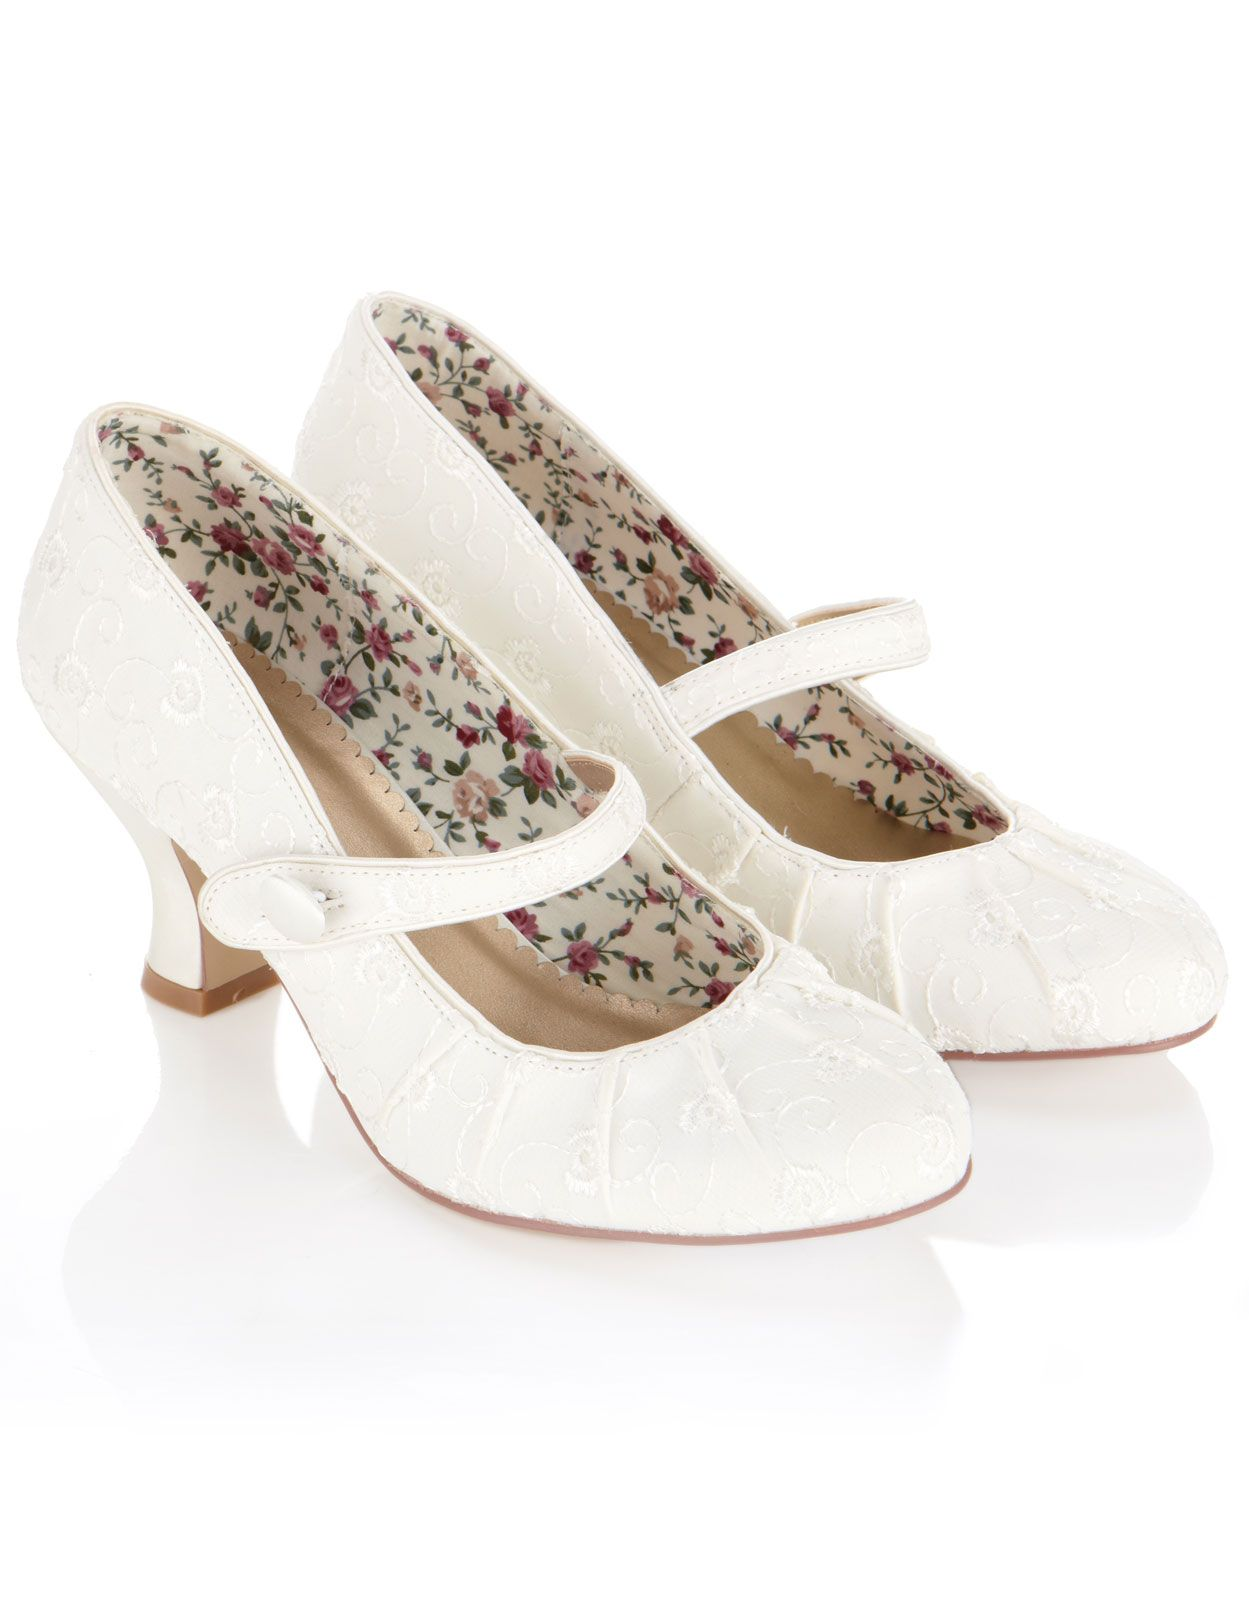 These are the prettiest bridal shoes I have ever seen I adore